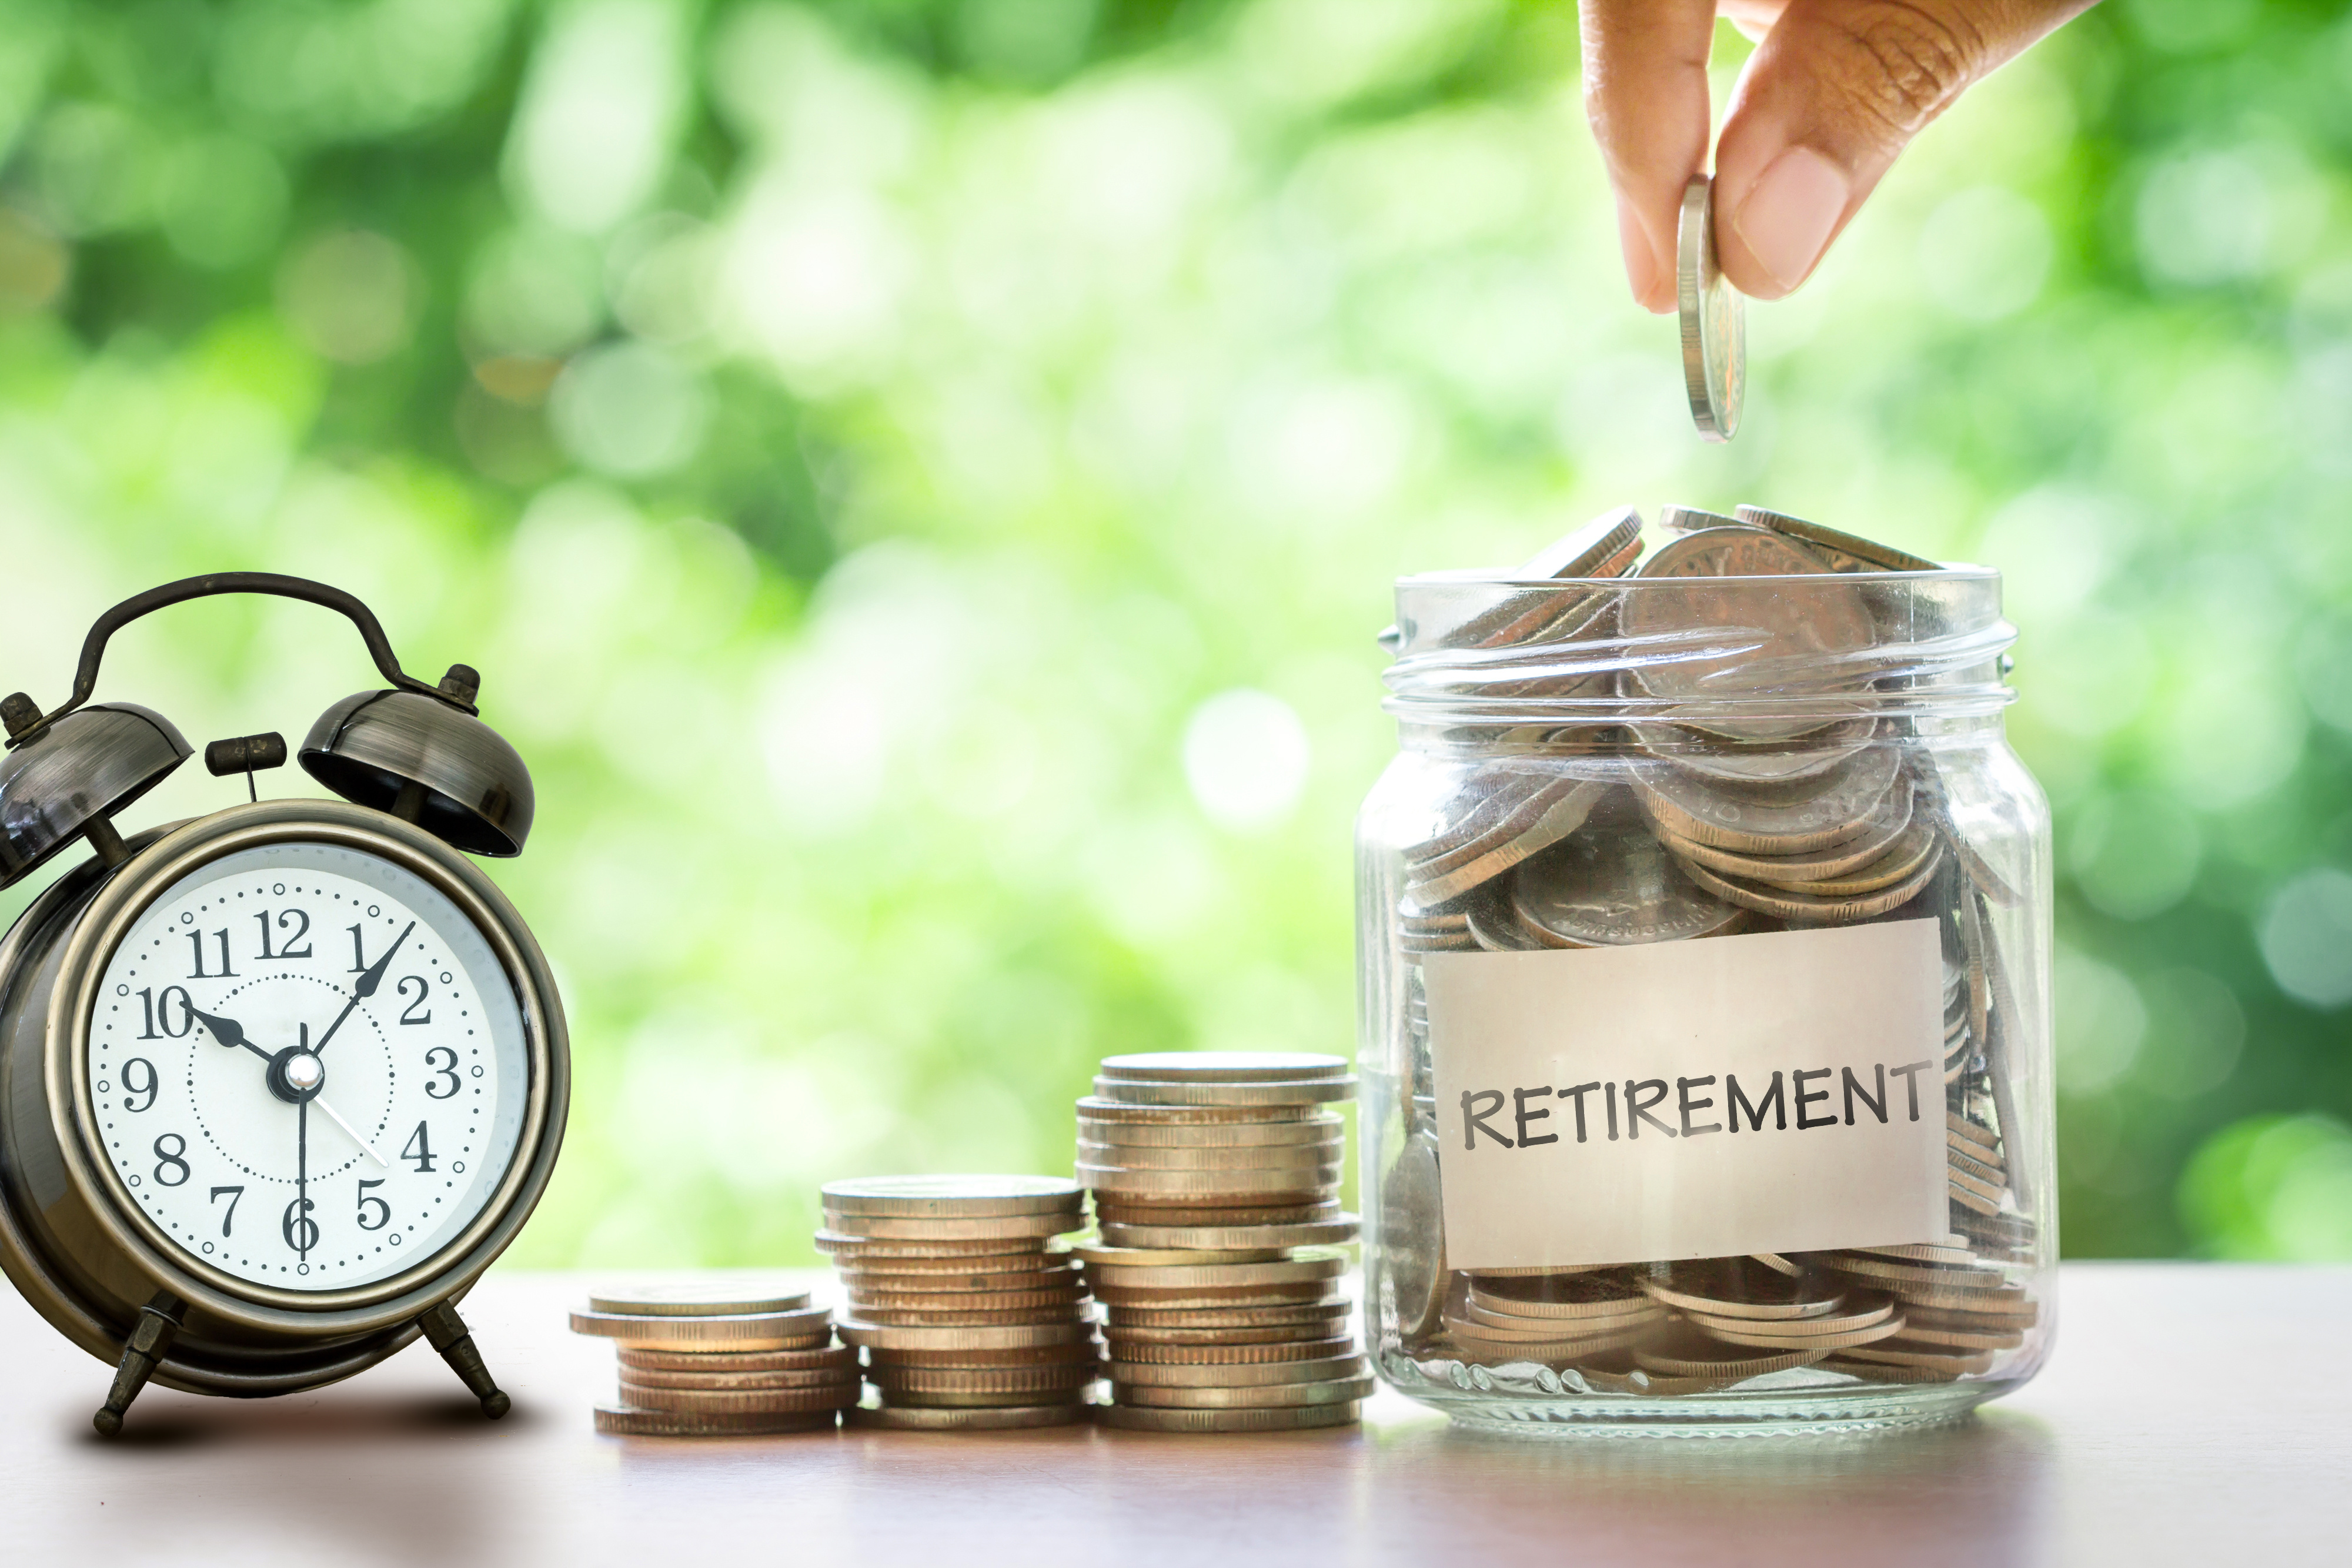 The reality is that most people don't get good, objective financial advice before they retire.